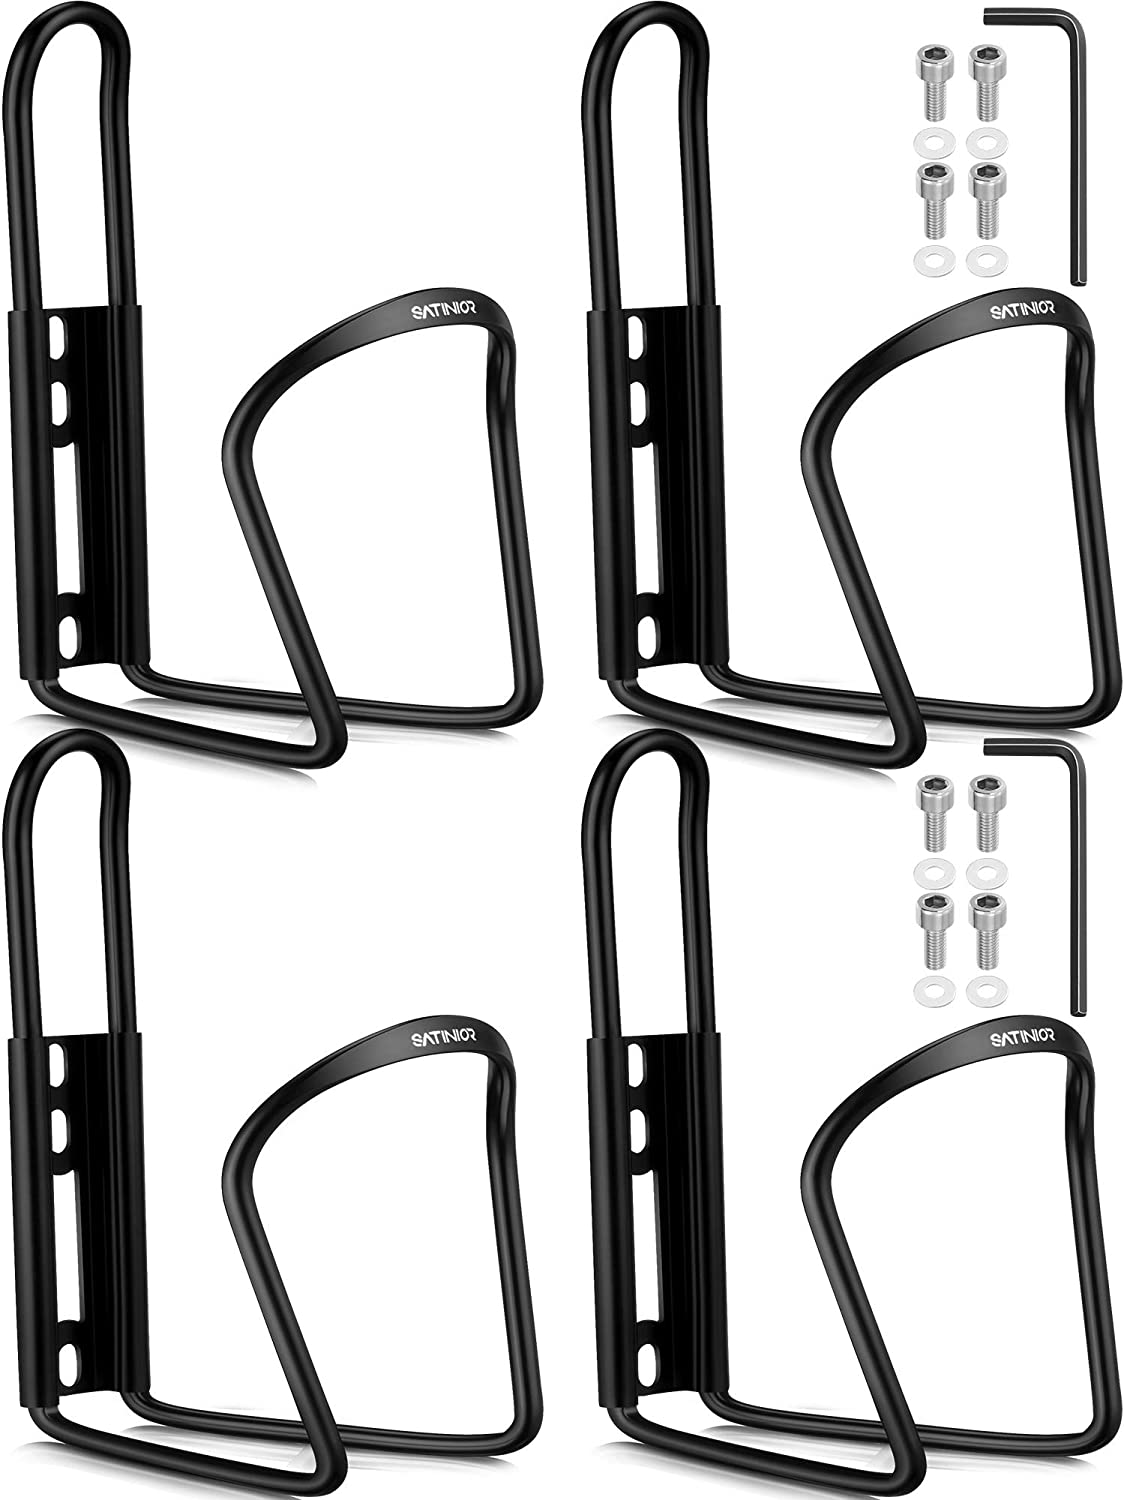 4 Pieces Bike Water Bottle Holder Bicycle Bottle Cage Aluminum Alloy Bicycle Water Bottle Mount Brackets for MTB Stroller Motorcycle Black